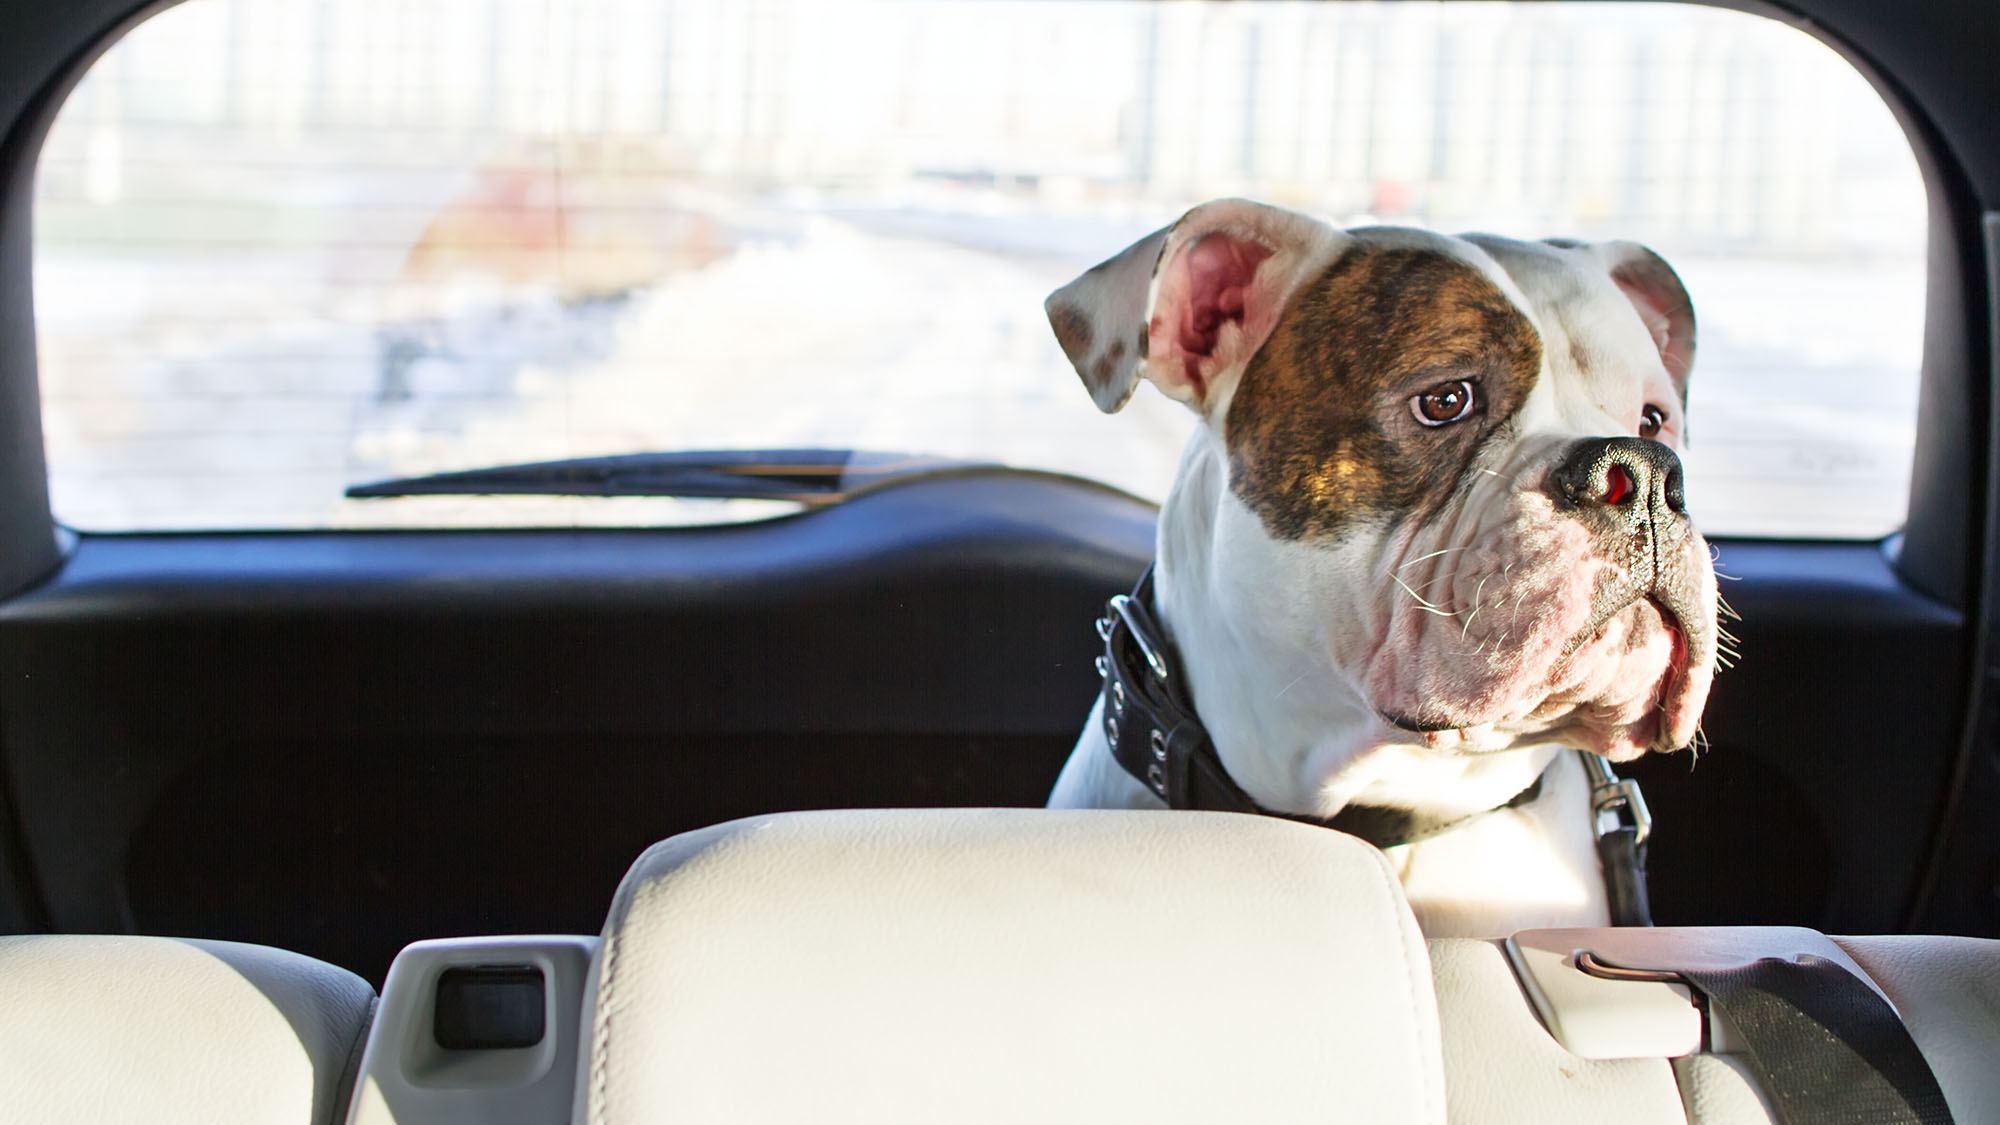 New US law makes it legal for people to break into cars to rescue trapped animals